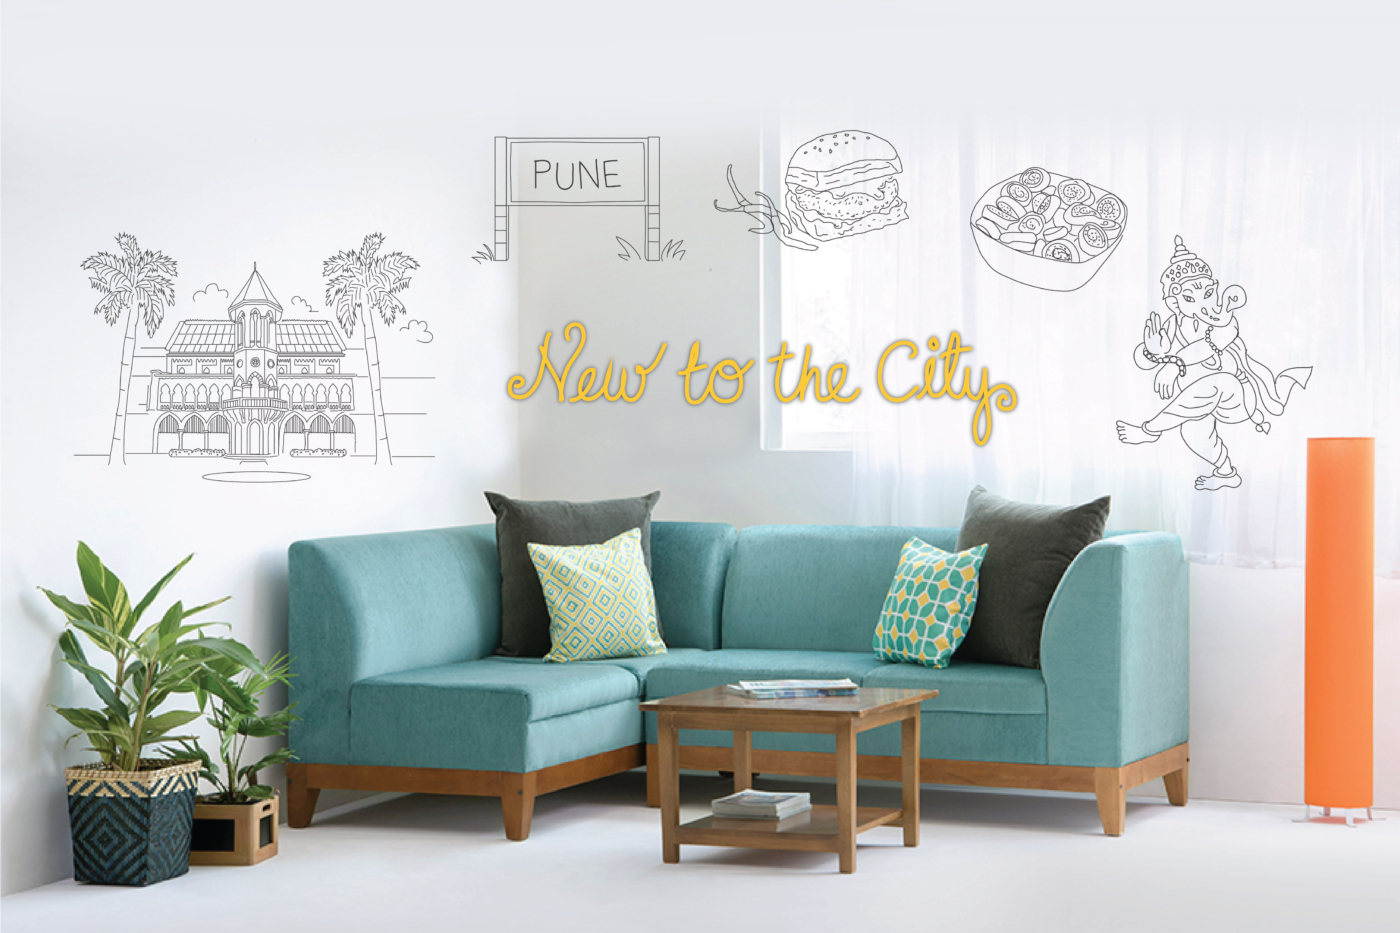 New to the City-pune